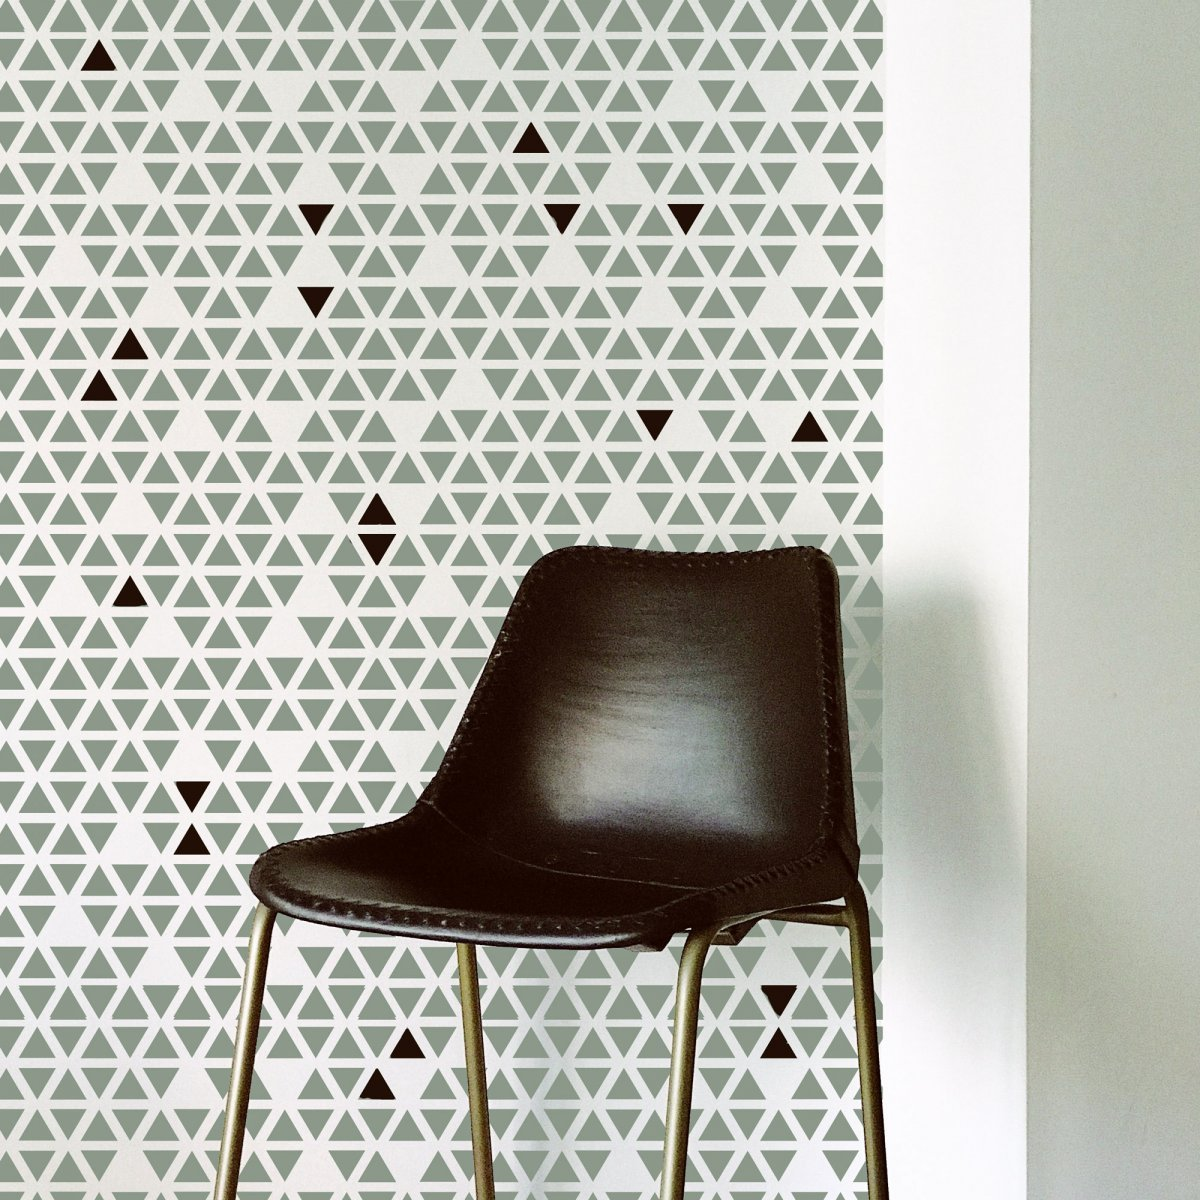 TRIANGLE DROP / Reusable Allover Large Wall Stencils for Painting